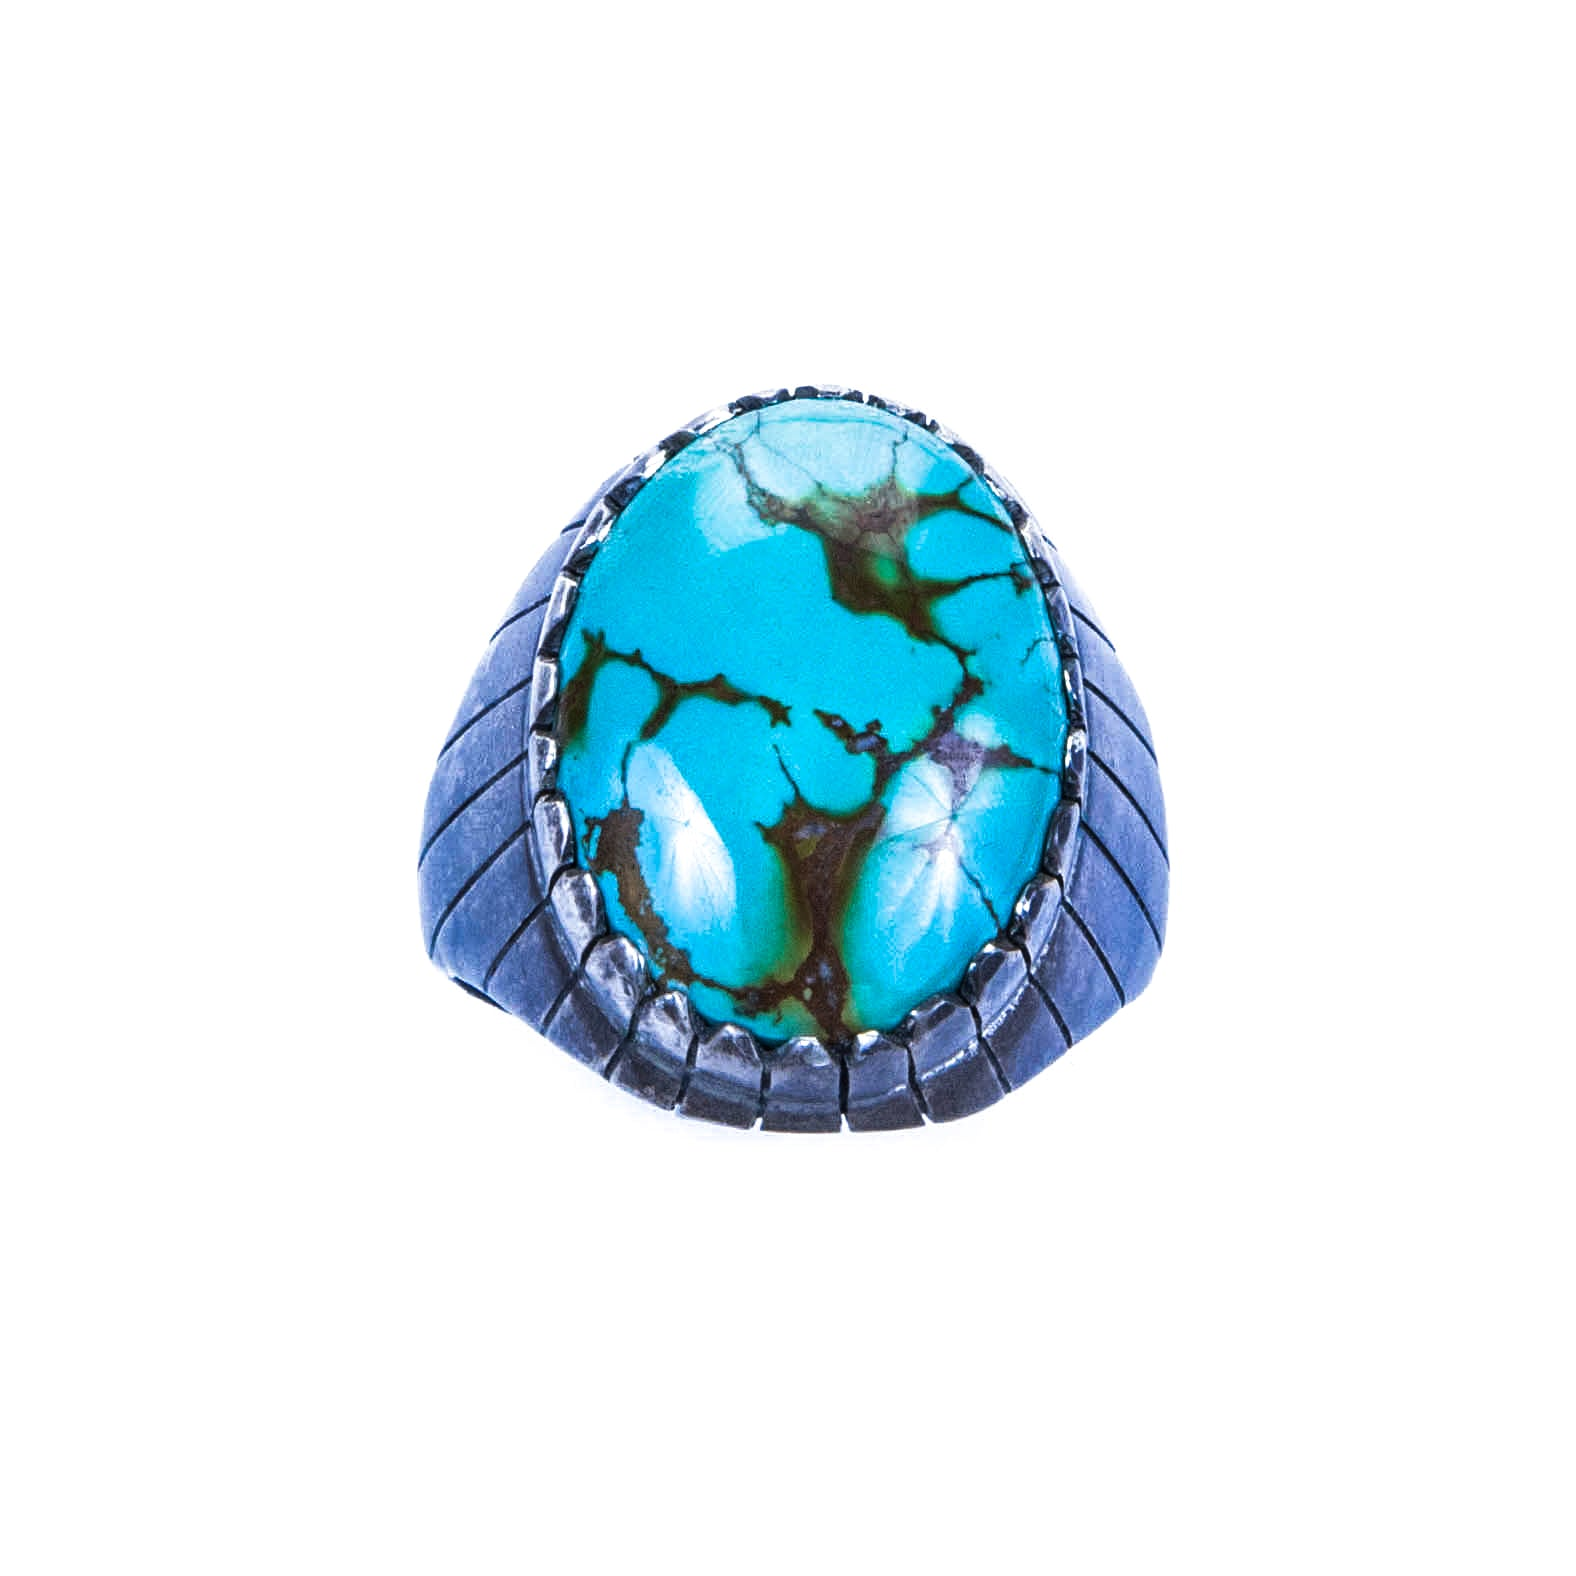 Navajo Ring rings, southwest jewelry, turquoise